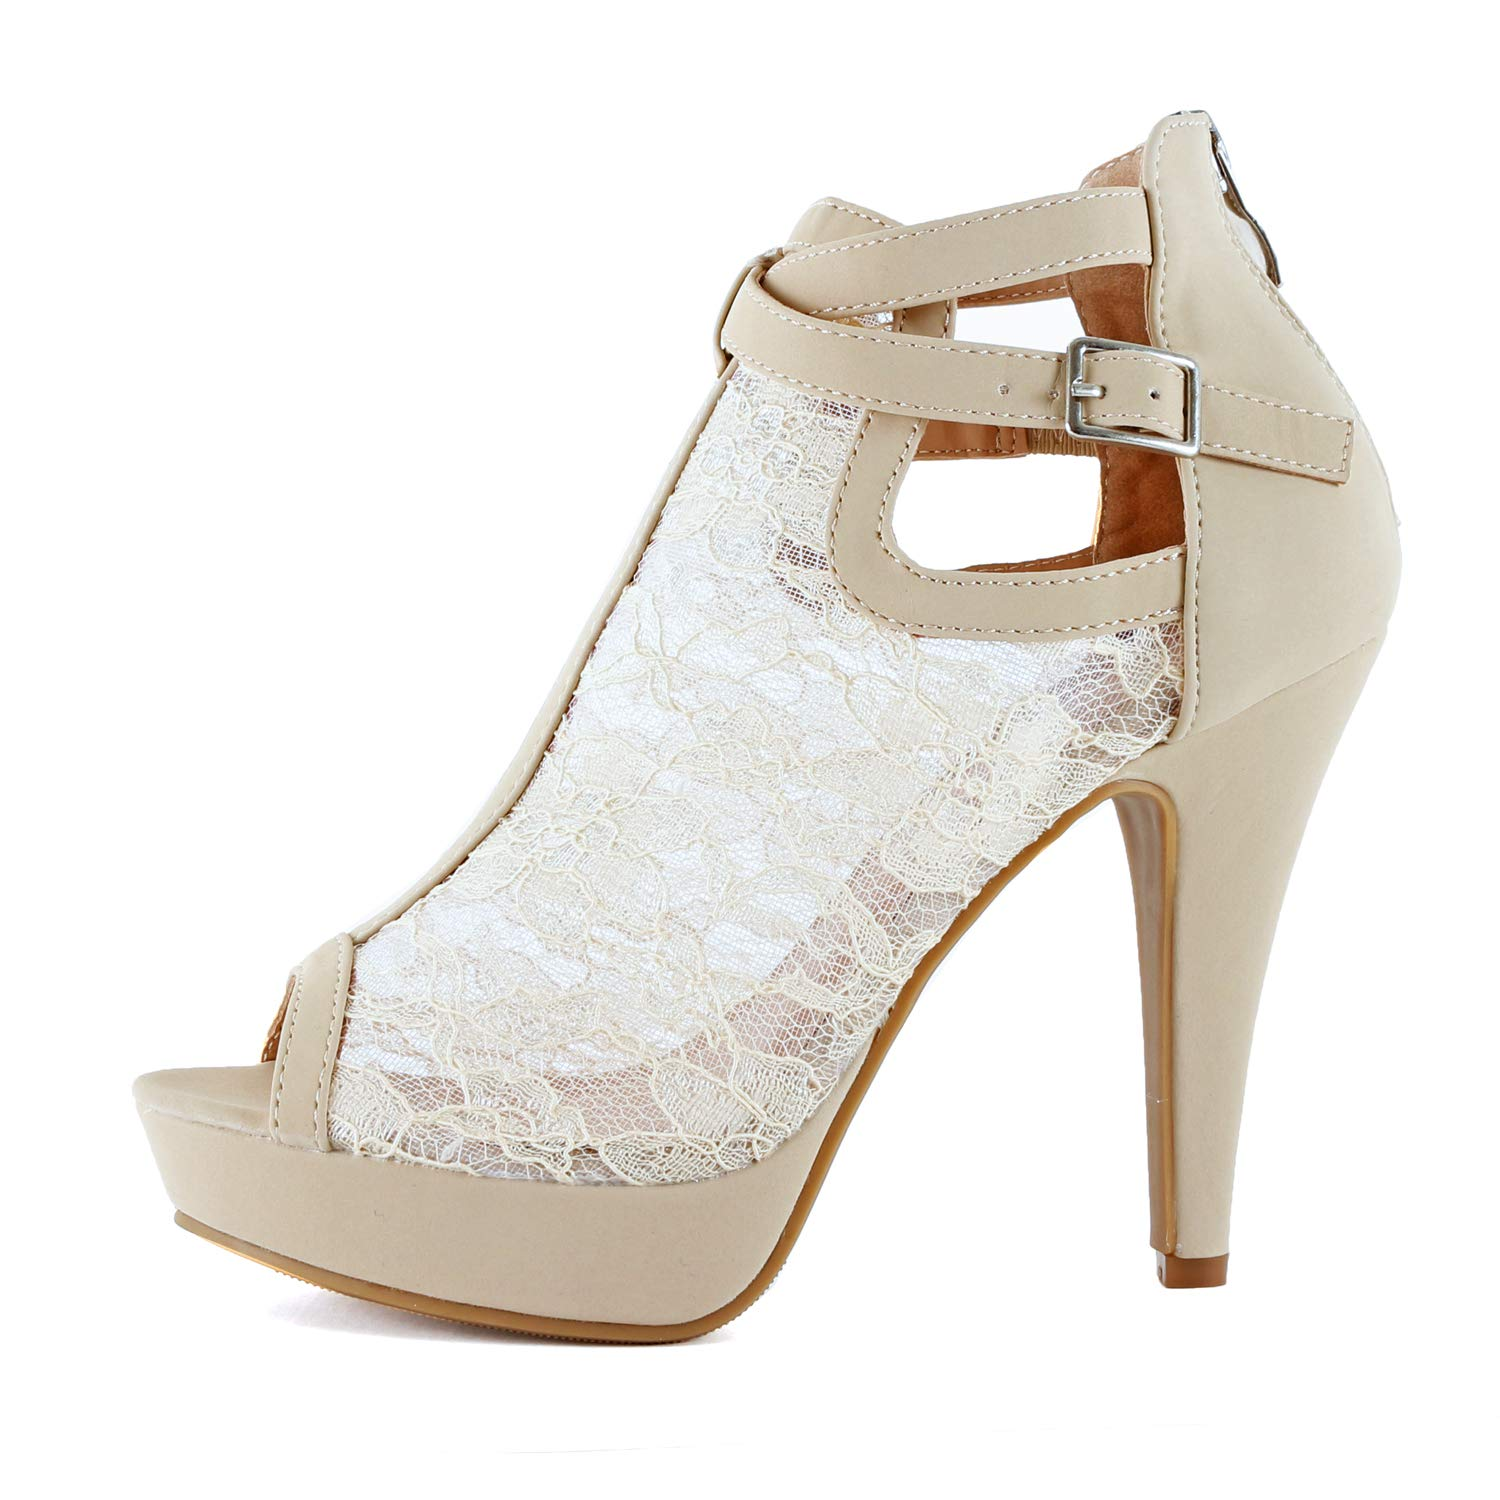 a06bcfe5ed3 Guilty Shoes Womens Cutout Gladiator Ankle Strap Platform Block Heel  Stiletto Sandals